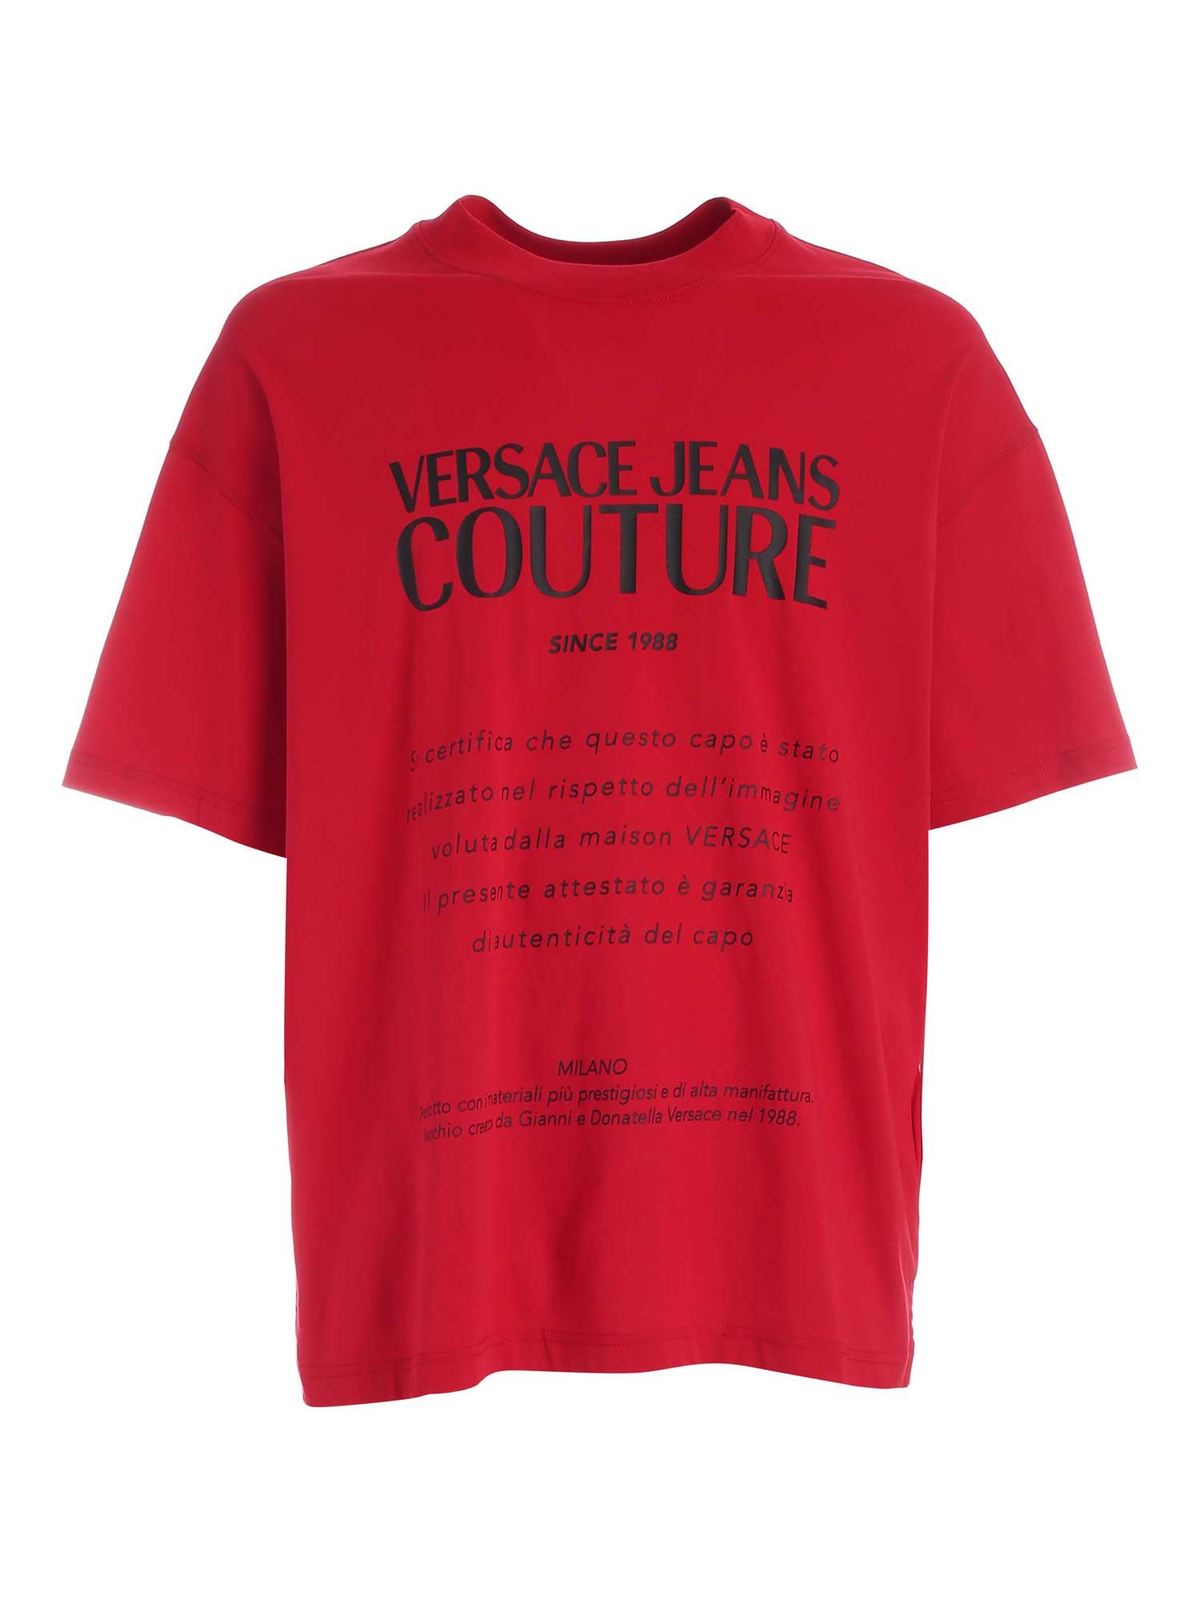 VERSACE JEANS COUTURE LABEL PRINT T-SHIRT IN RED